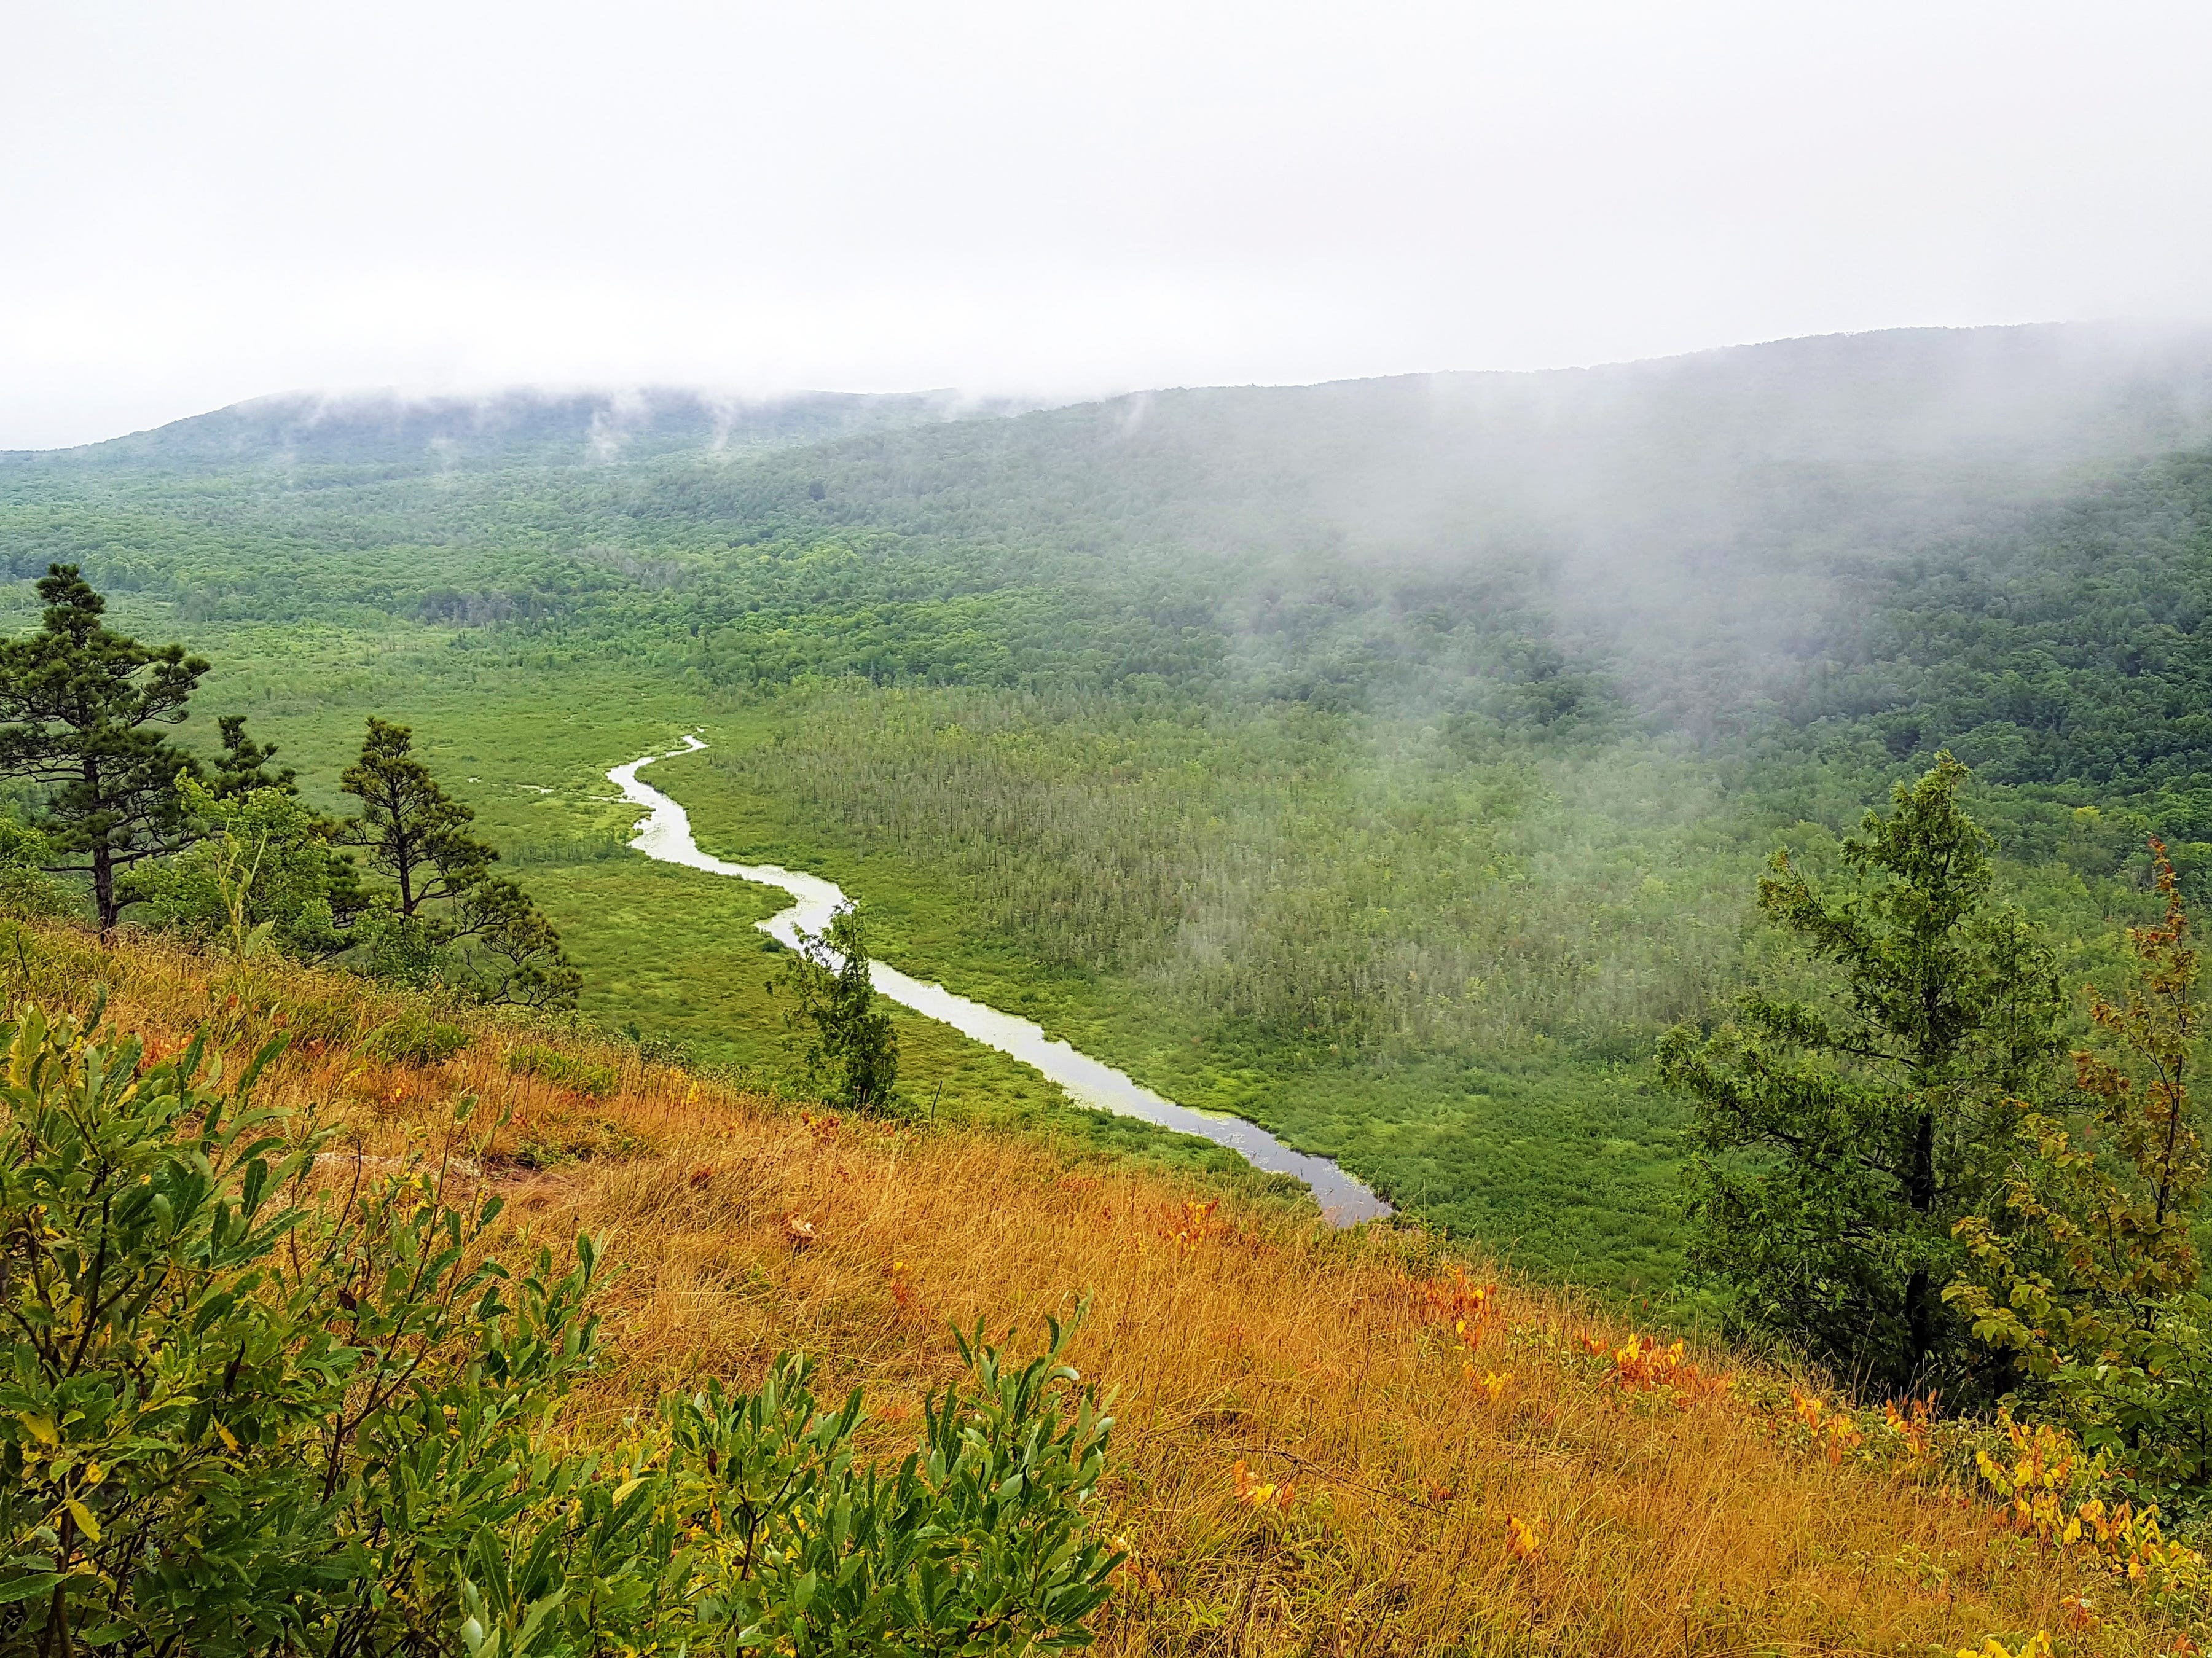 The Upper Carp River winds through a foggy valley in the Porcupine Mountains Wilderness State Park in Michigan's Upper Peninsula.